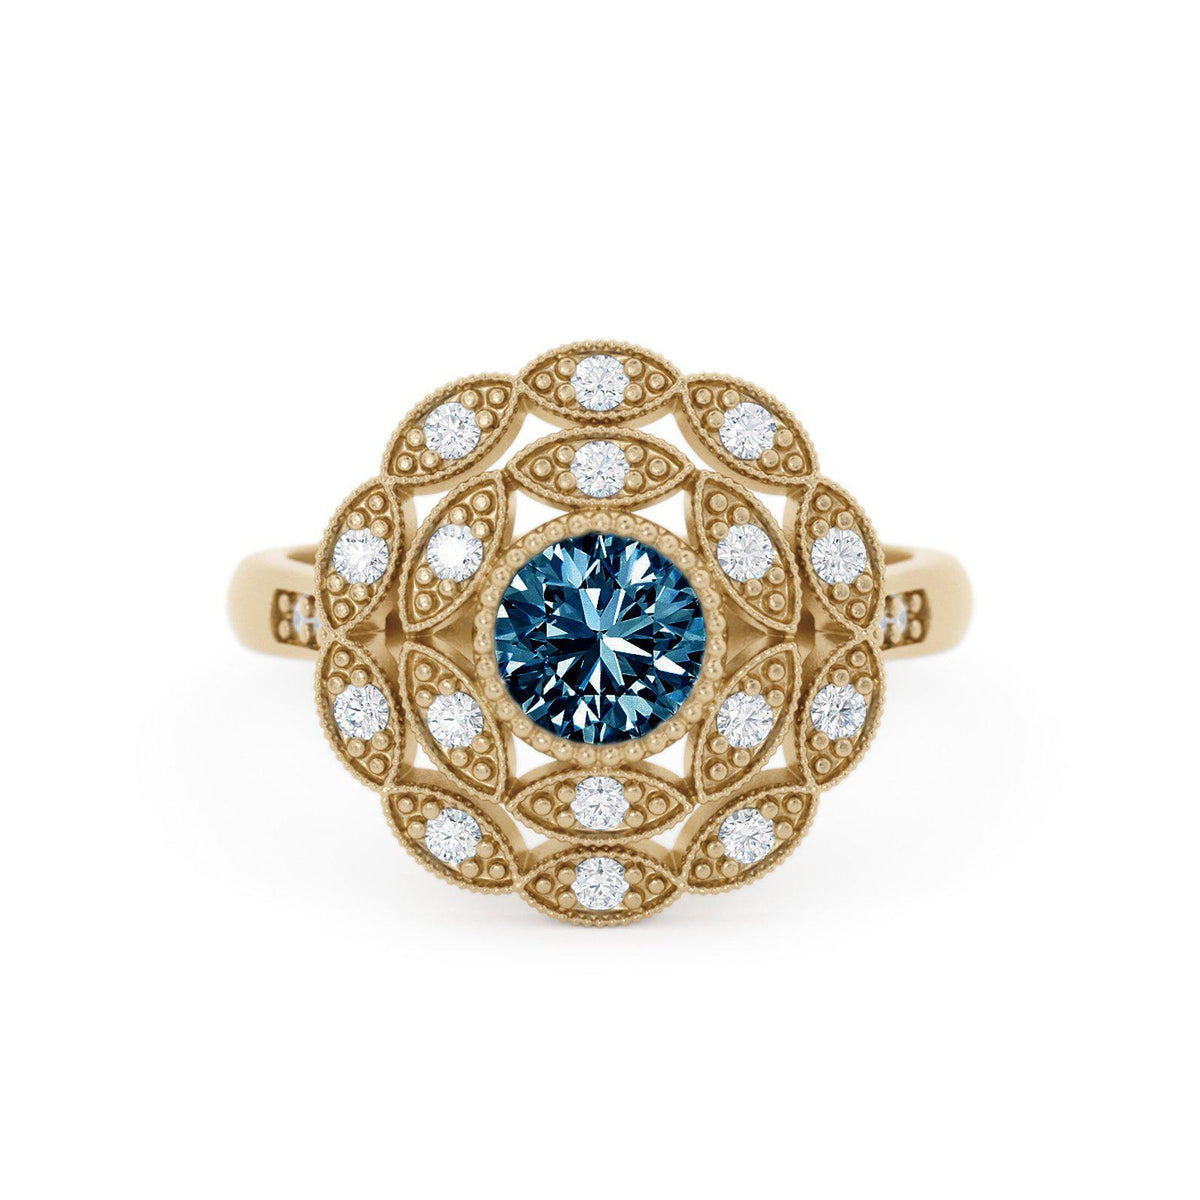 Rosabella Montana Sapphire Ring with Double Halo Floral Inspired